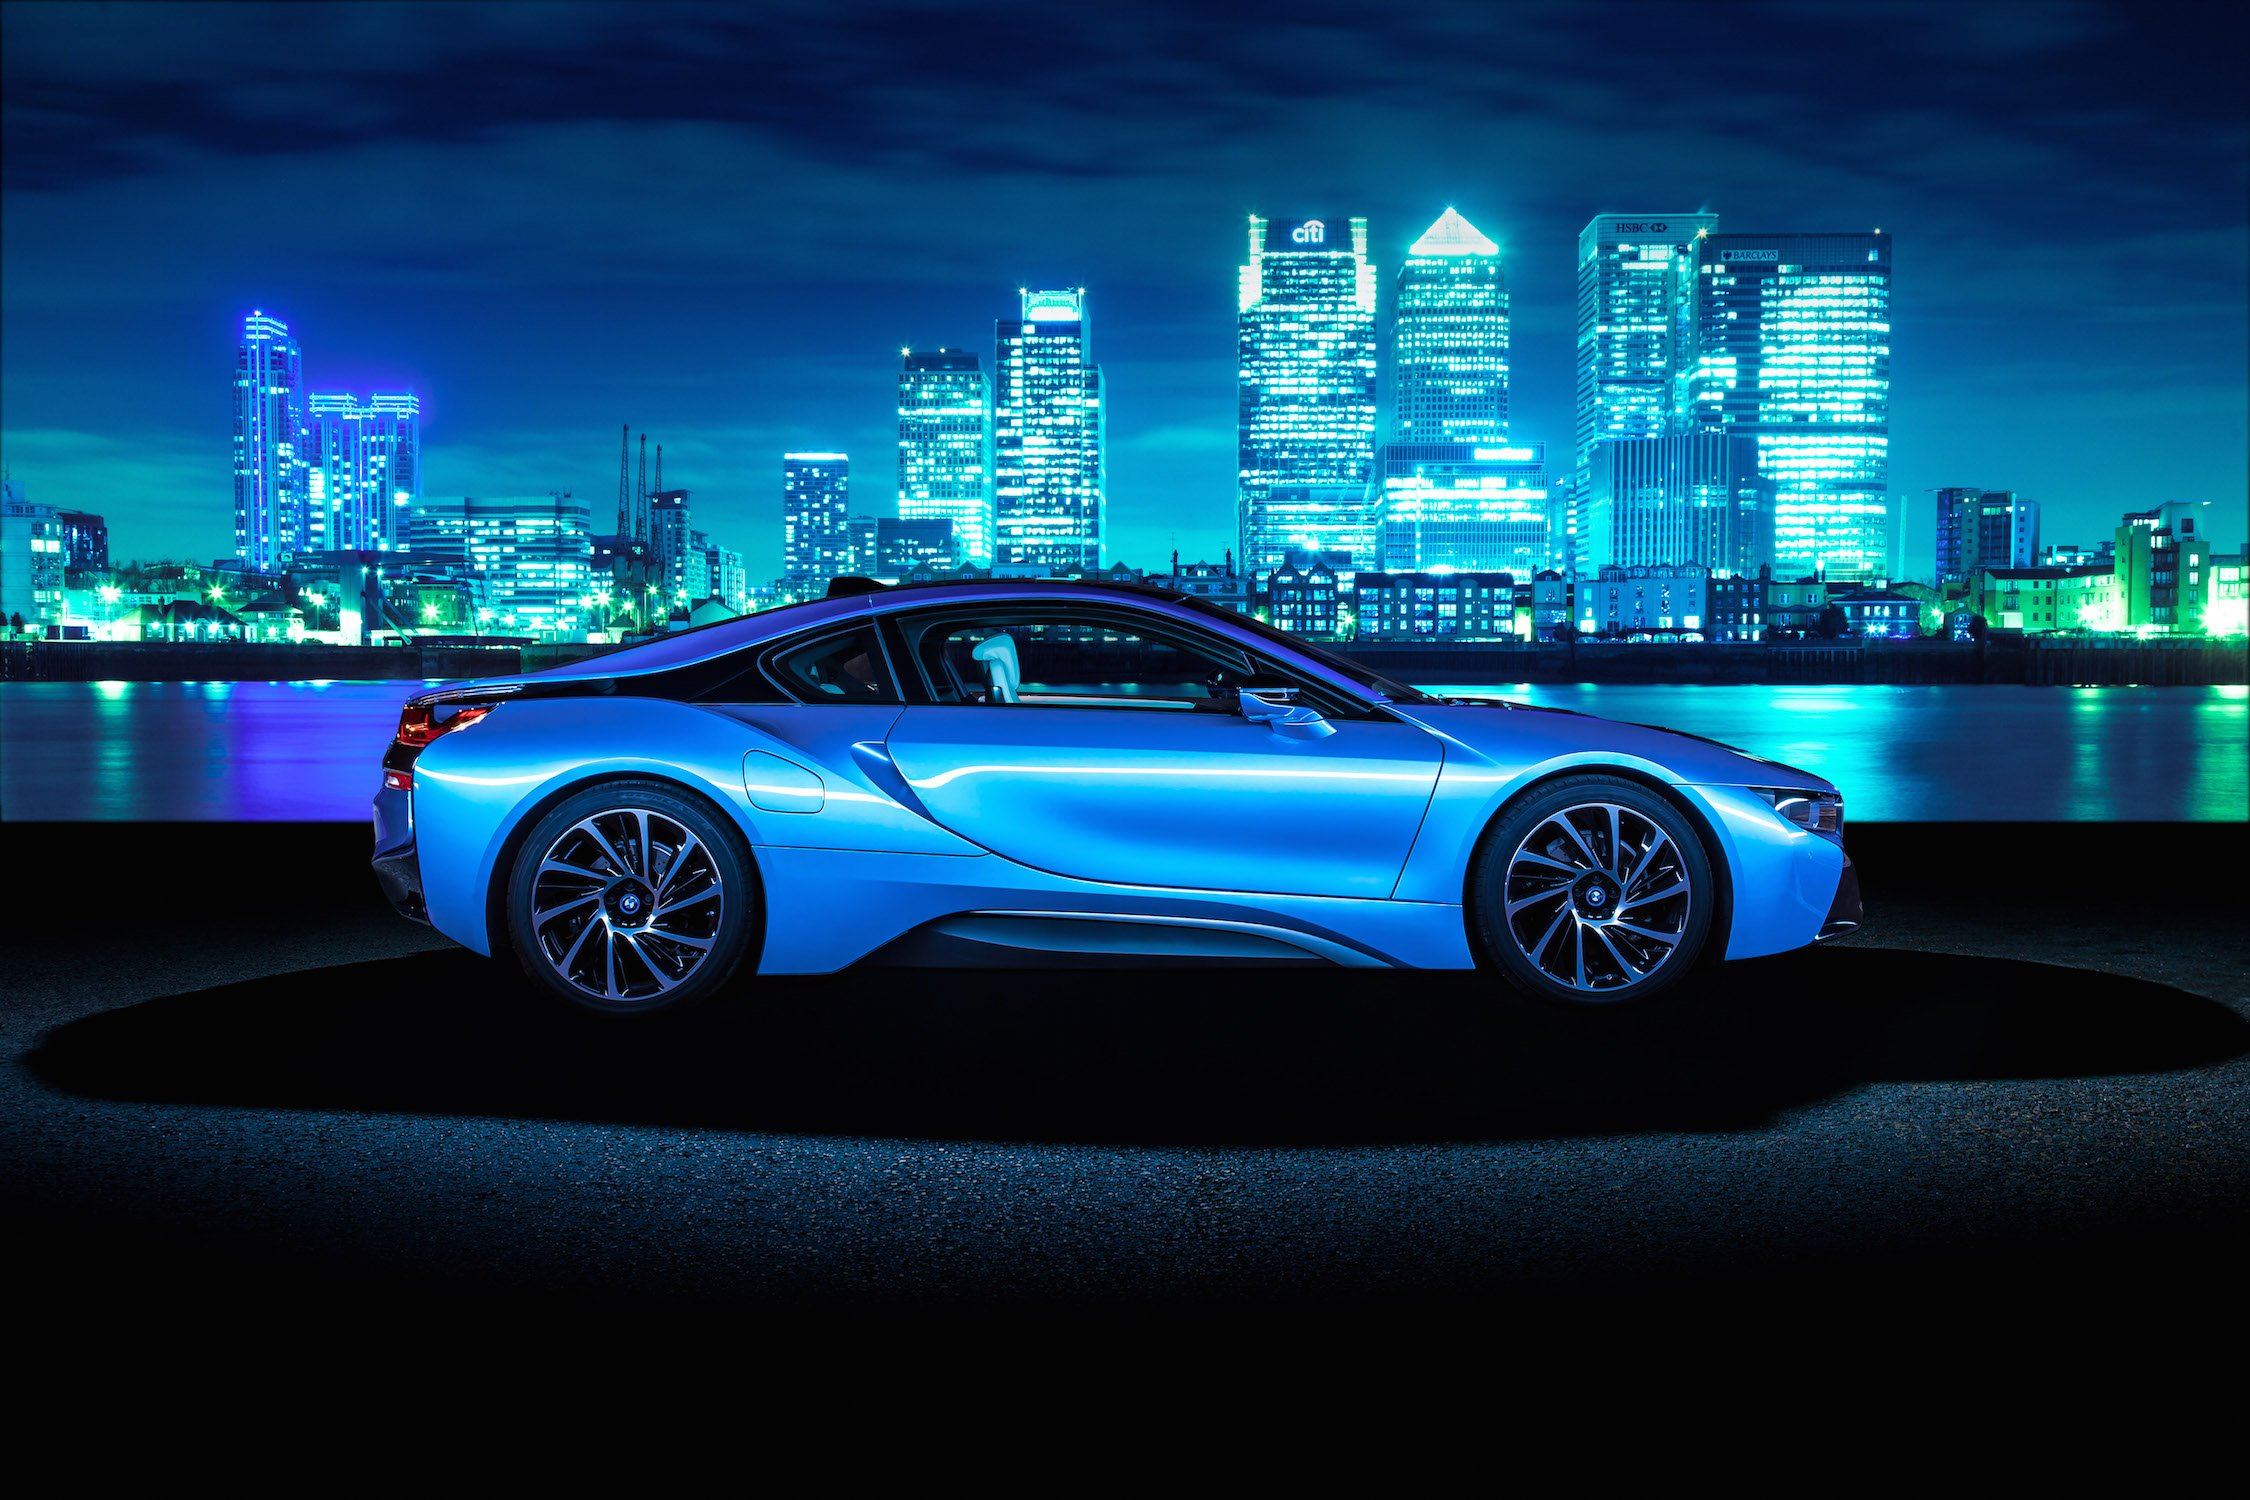 The Bmw I8 Supercar Is Officially The Best Car In The Uk